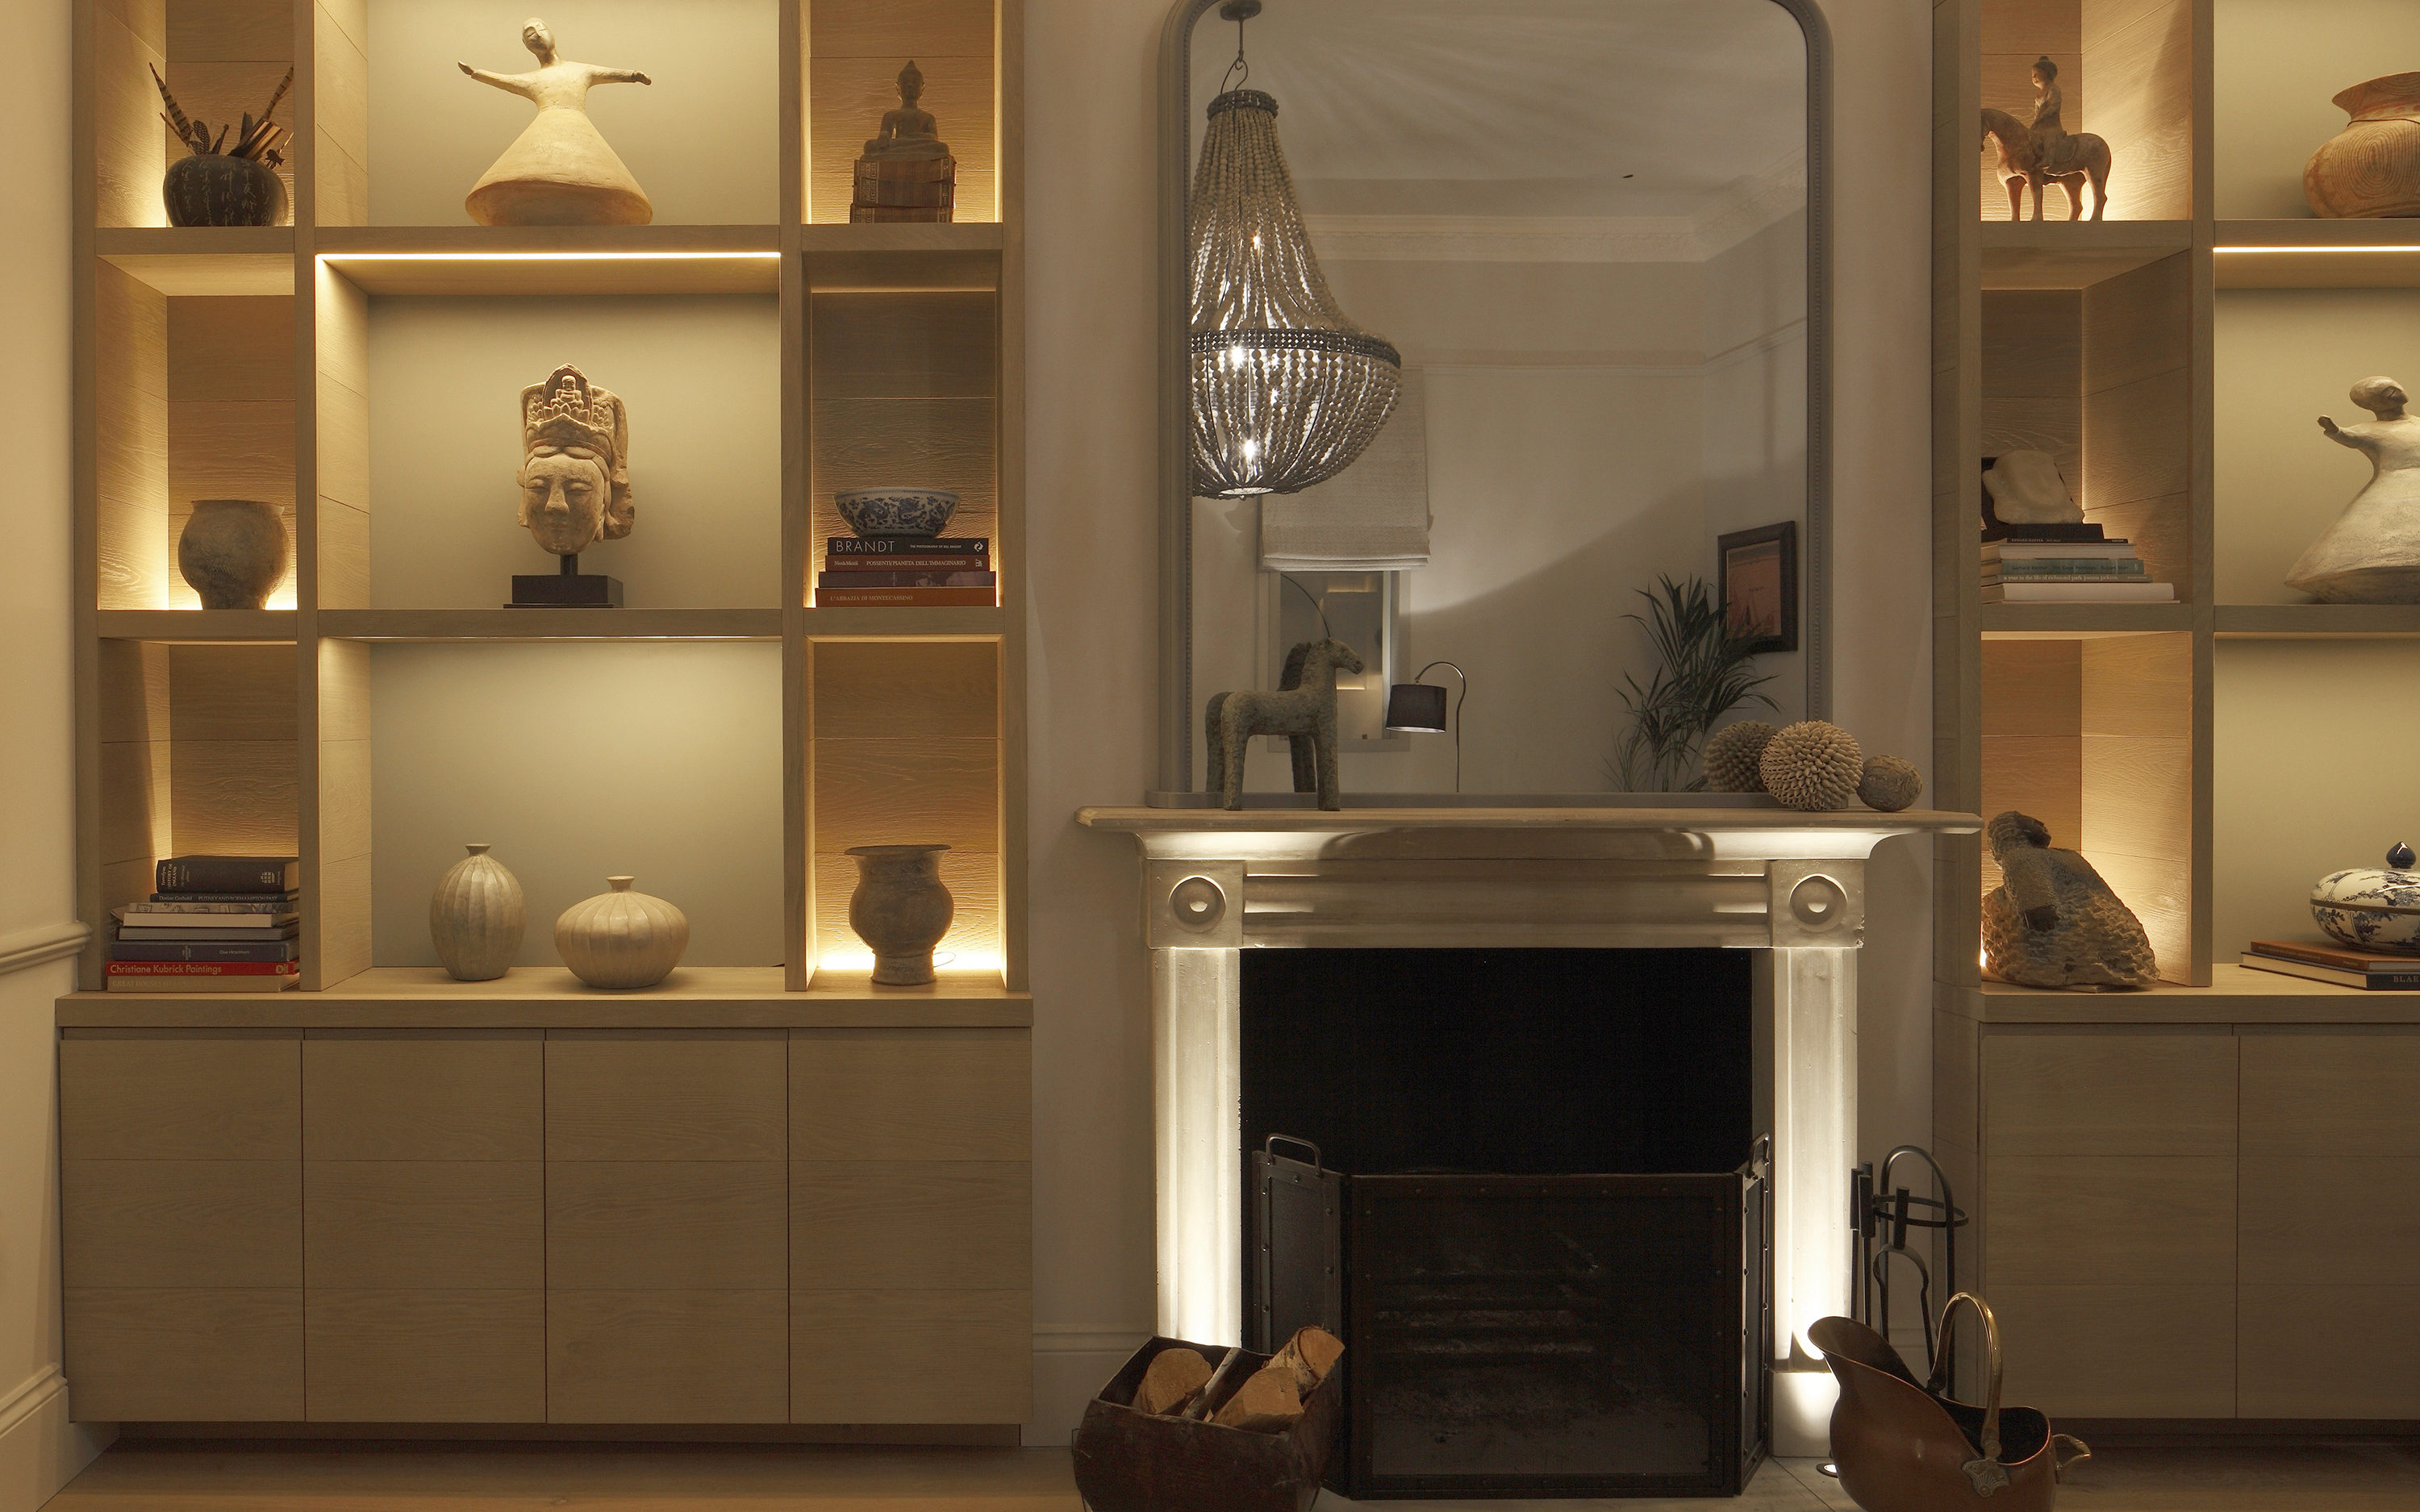 Shelving showing different techniques of lighting